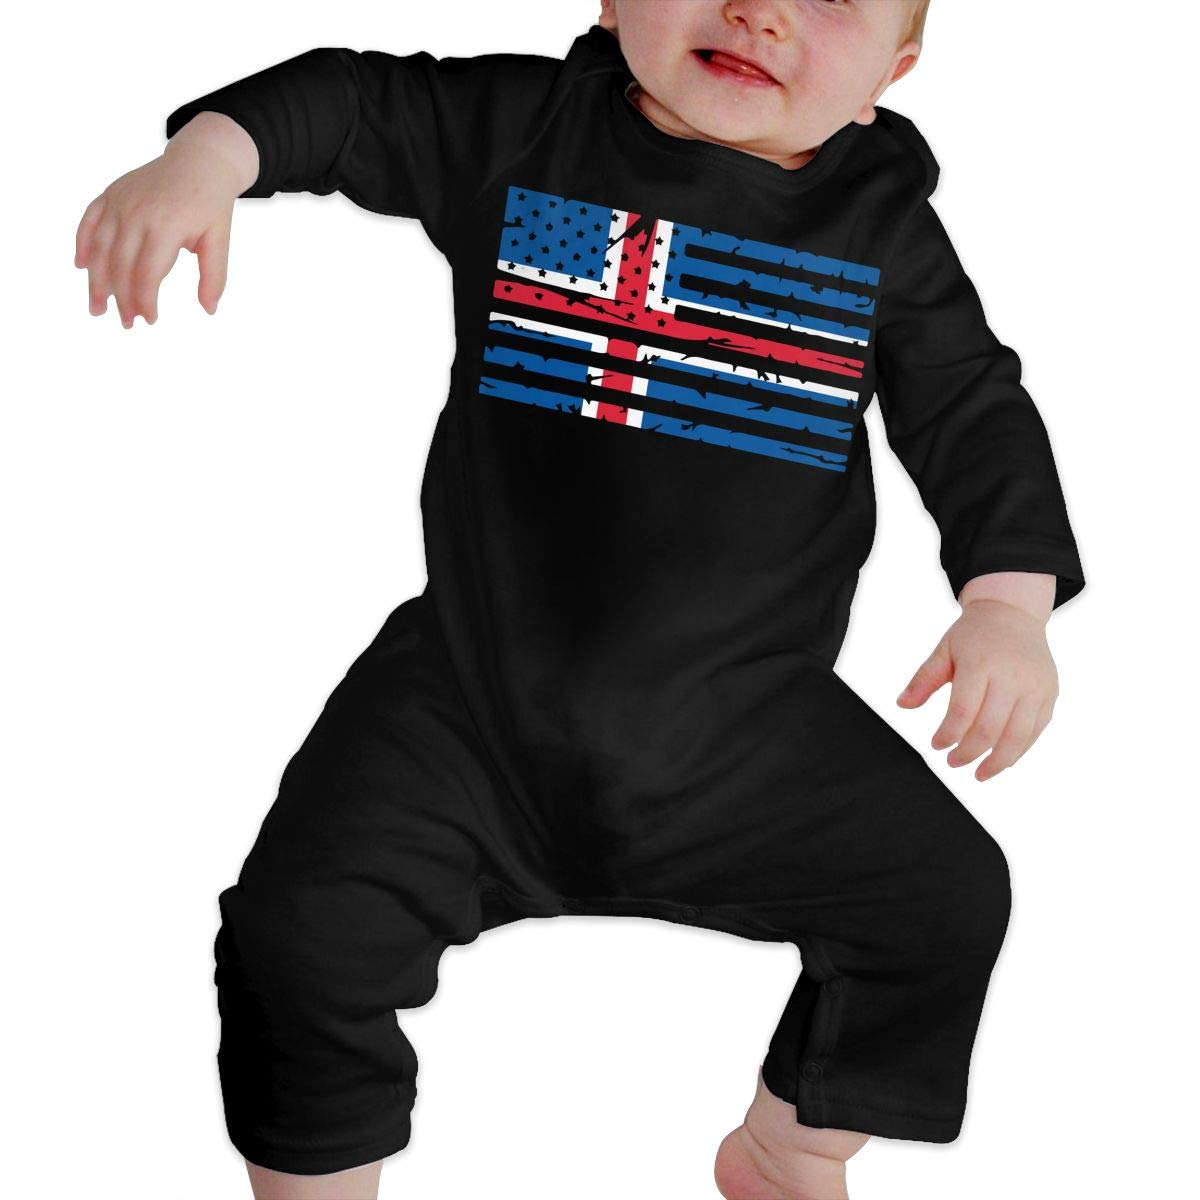 LBJQ8 Iceland American Flag Unisex Baby Sleep and Play Bodysuits Coverall Jumpsuit